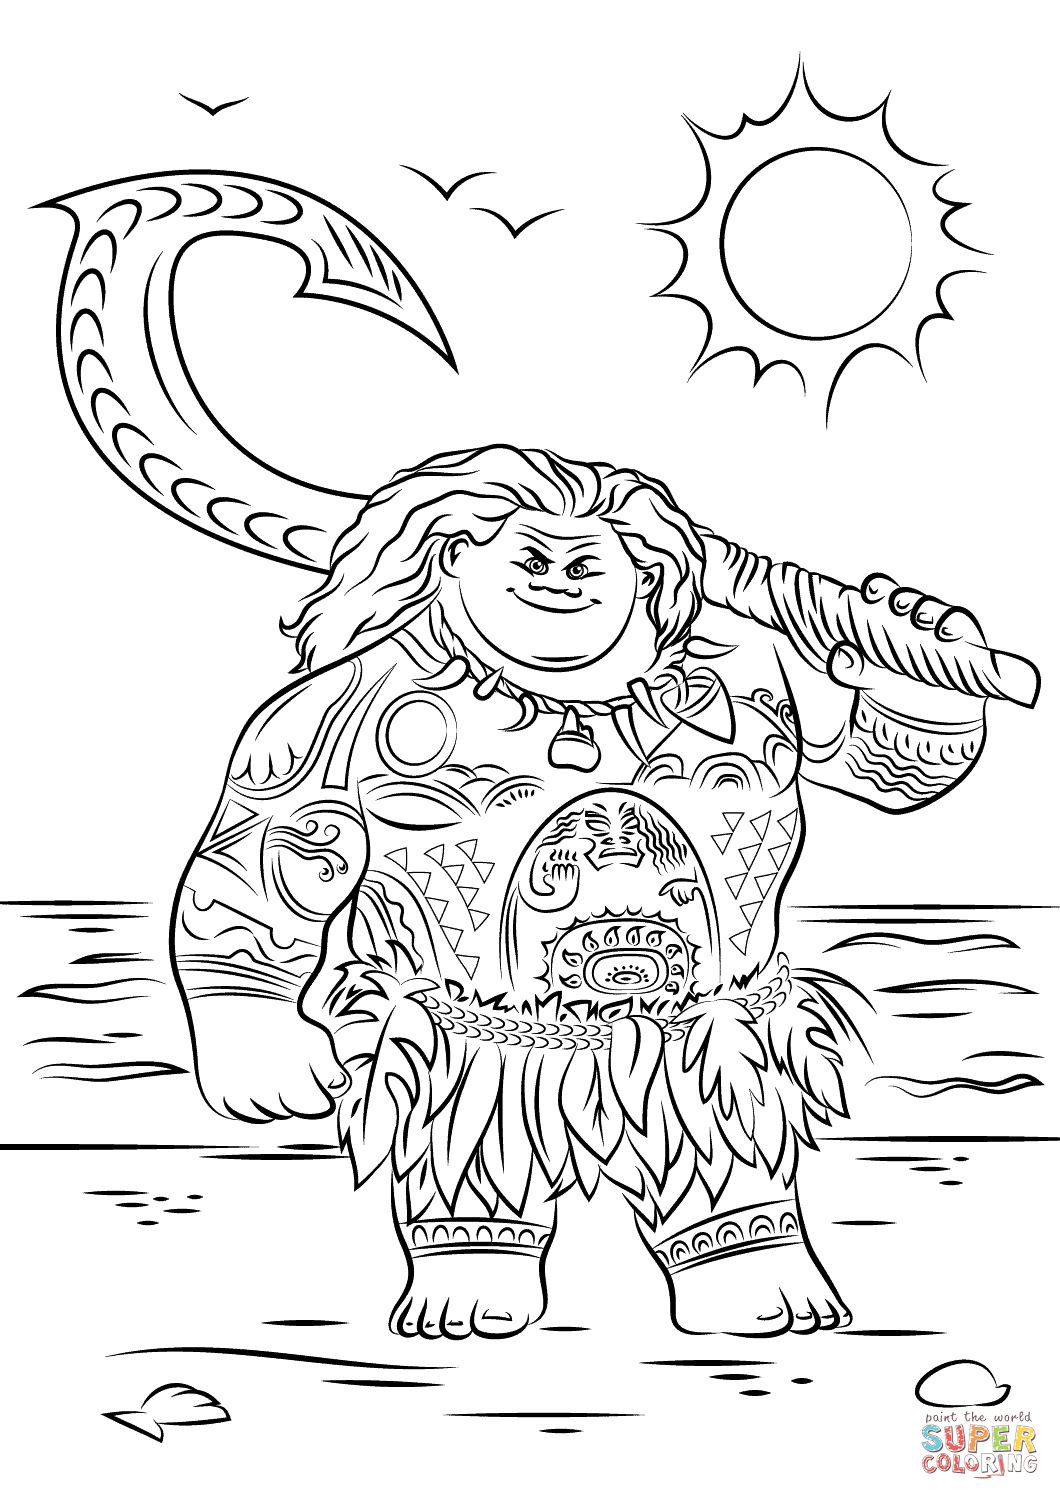 Maui from Moana from Moana Coloring Pages